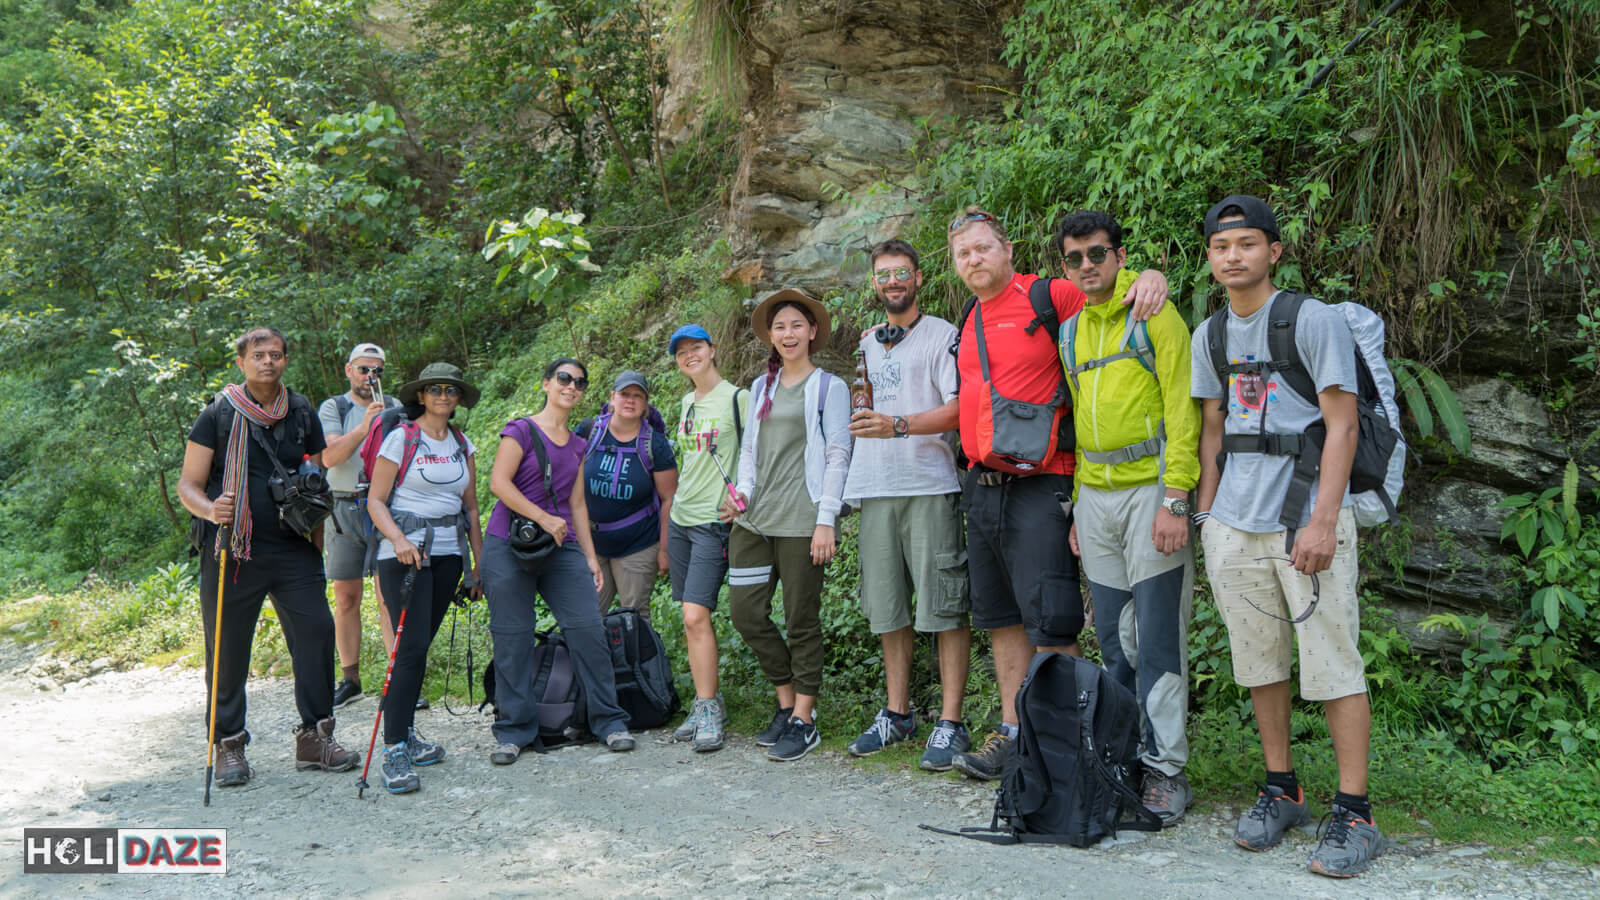 Our group photo before trekking Annapurna Sanctuary in Nepal